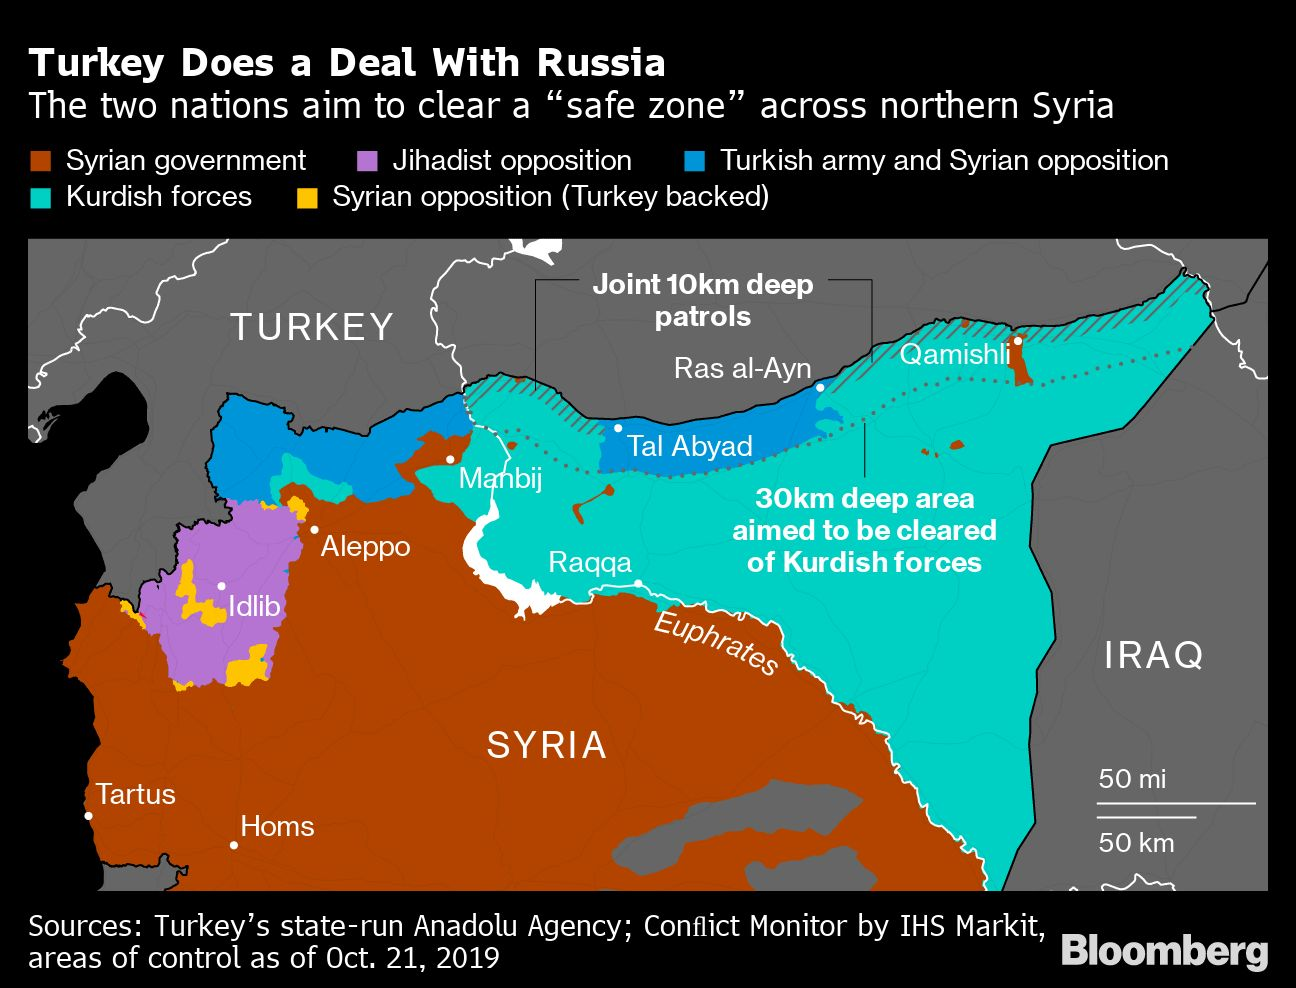 Putin Faces Syria Money Crunch After U.S. Keeps Control of Oil